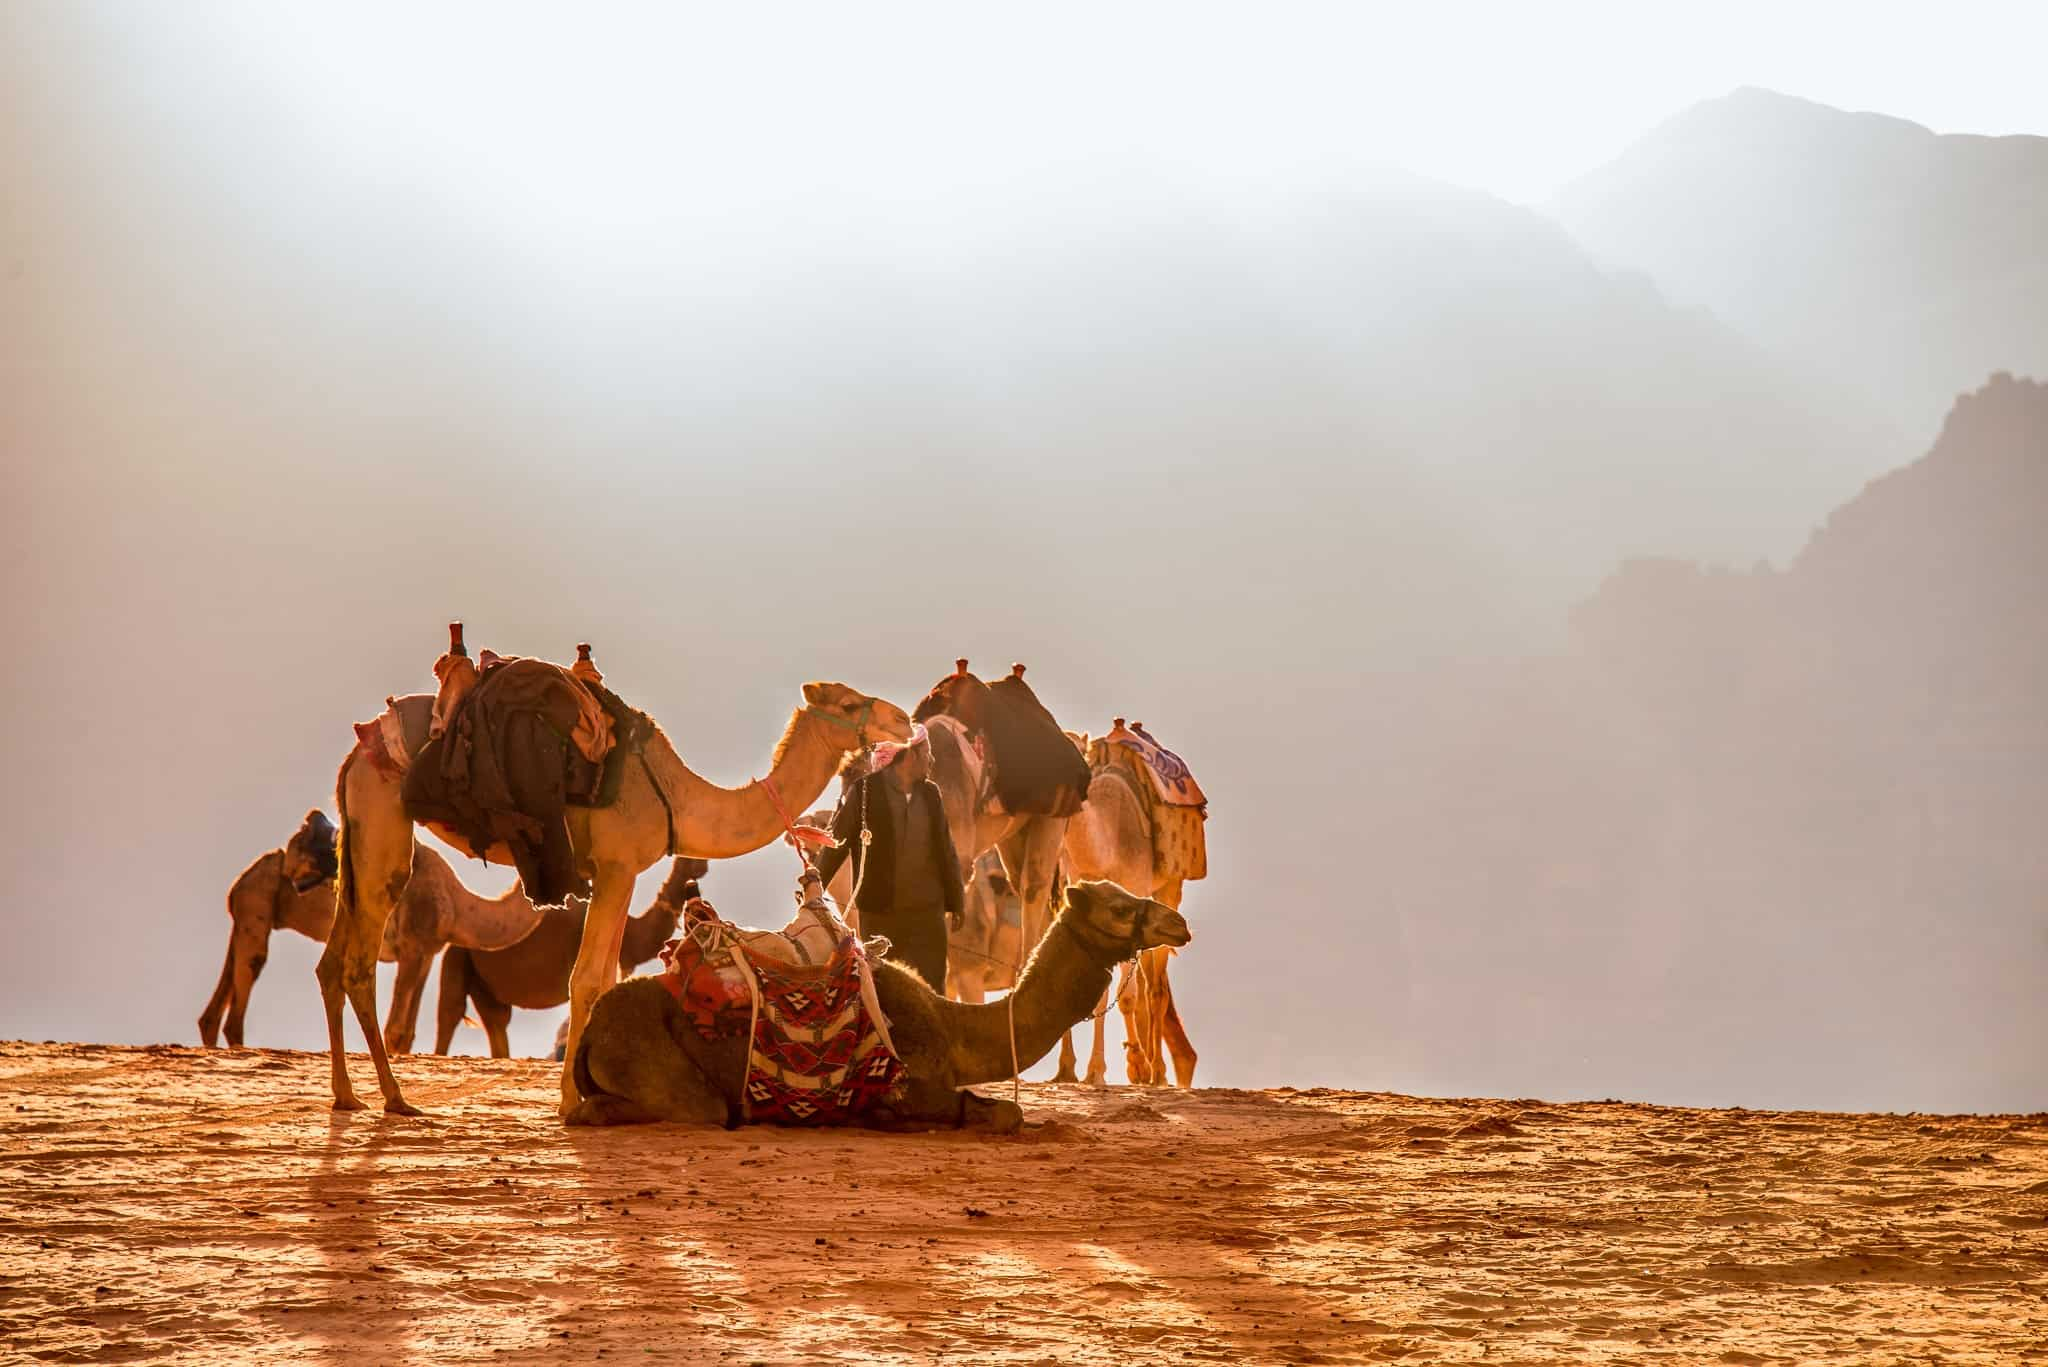 A scene with camels in the Jordan desert